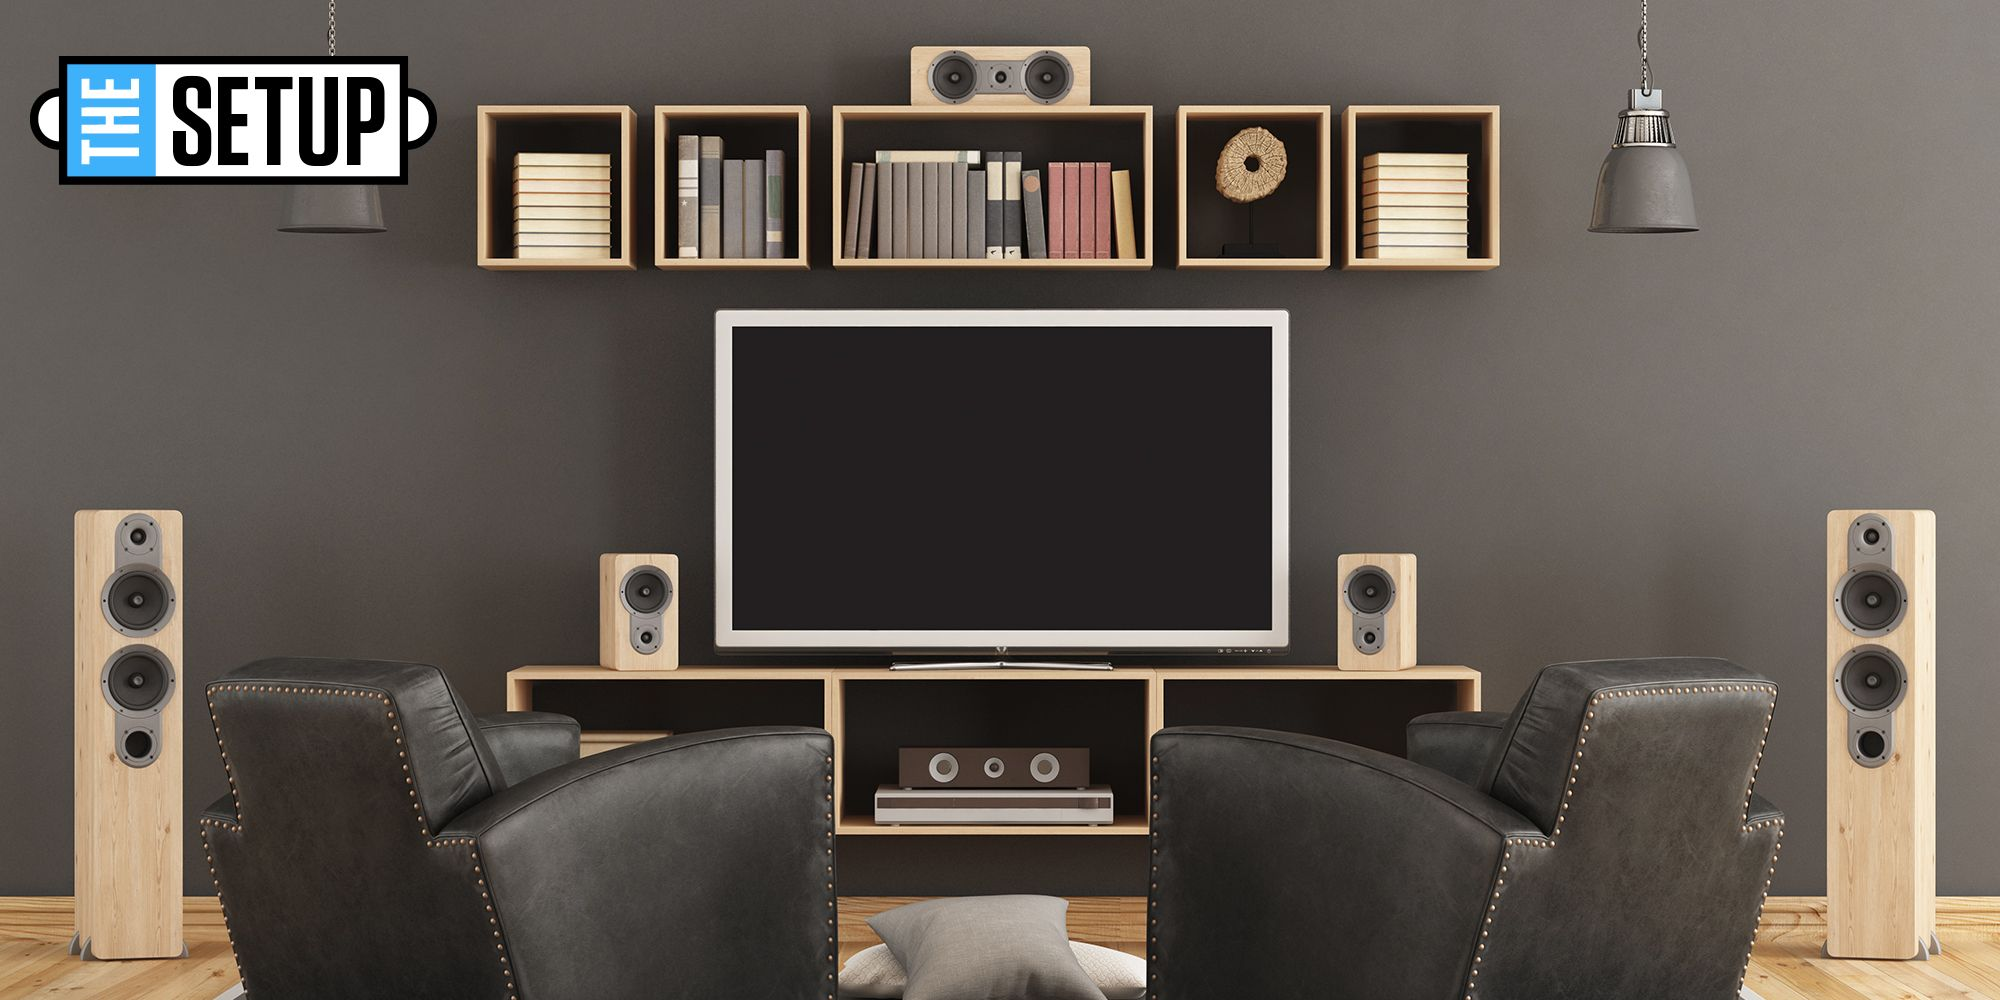 The Setup: Building a Great Home Entertainment System on